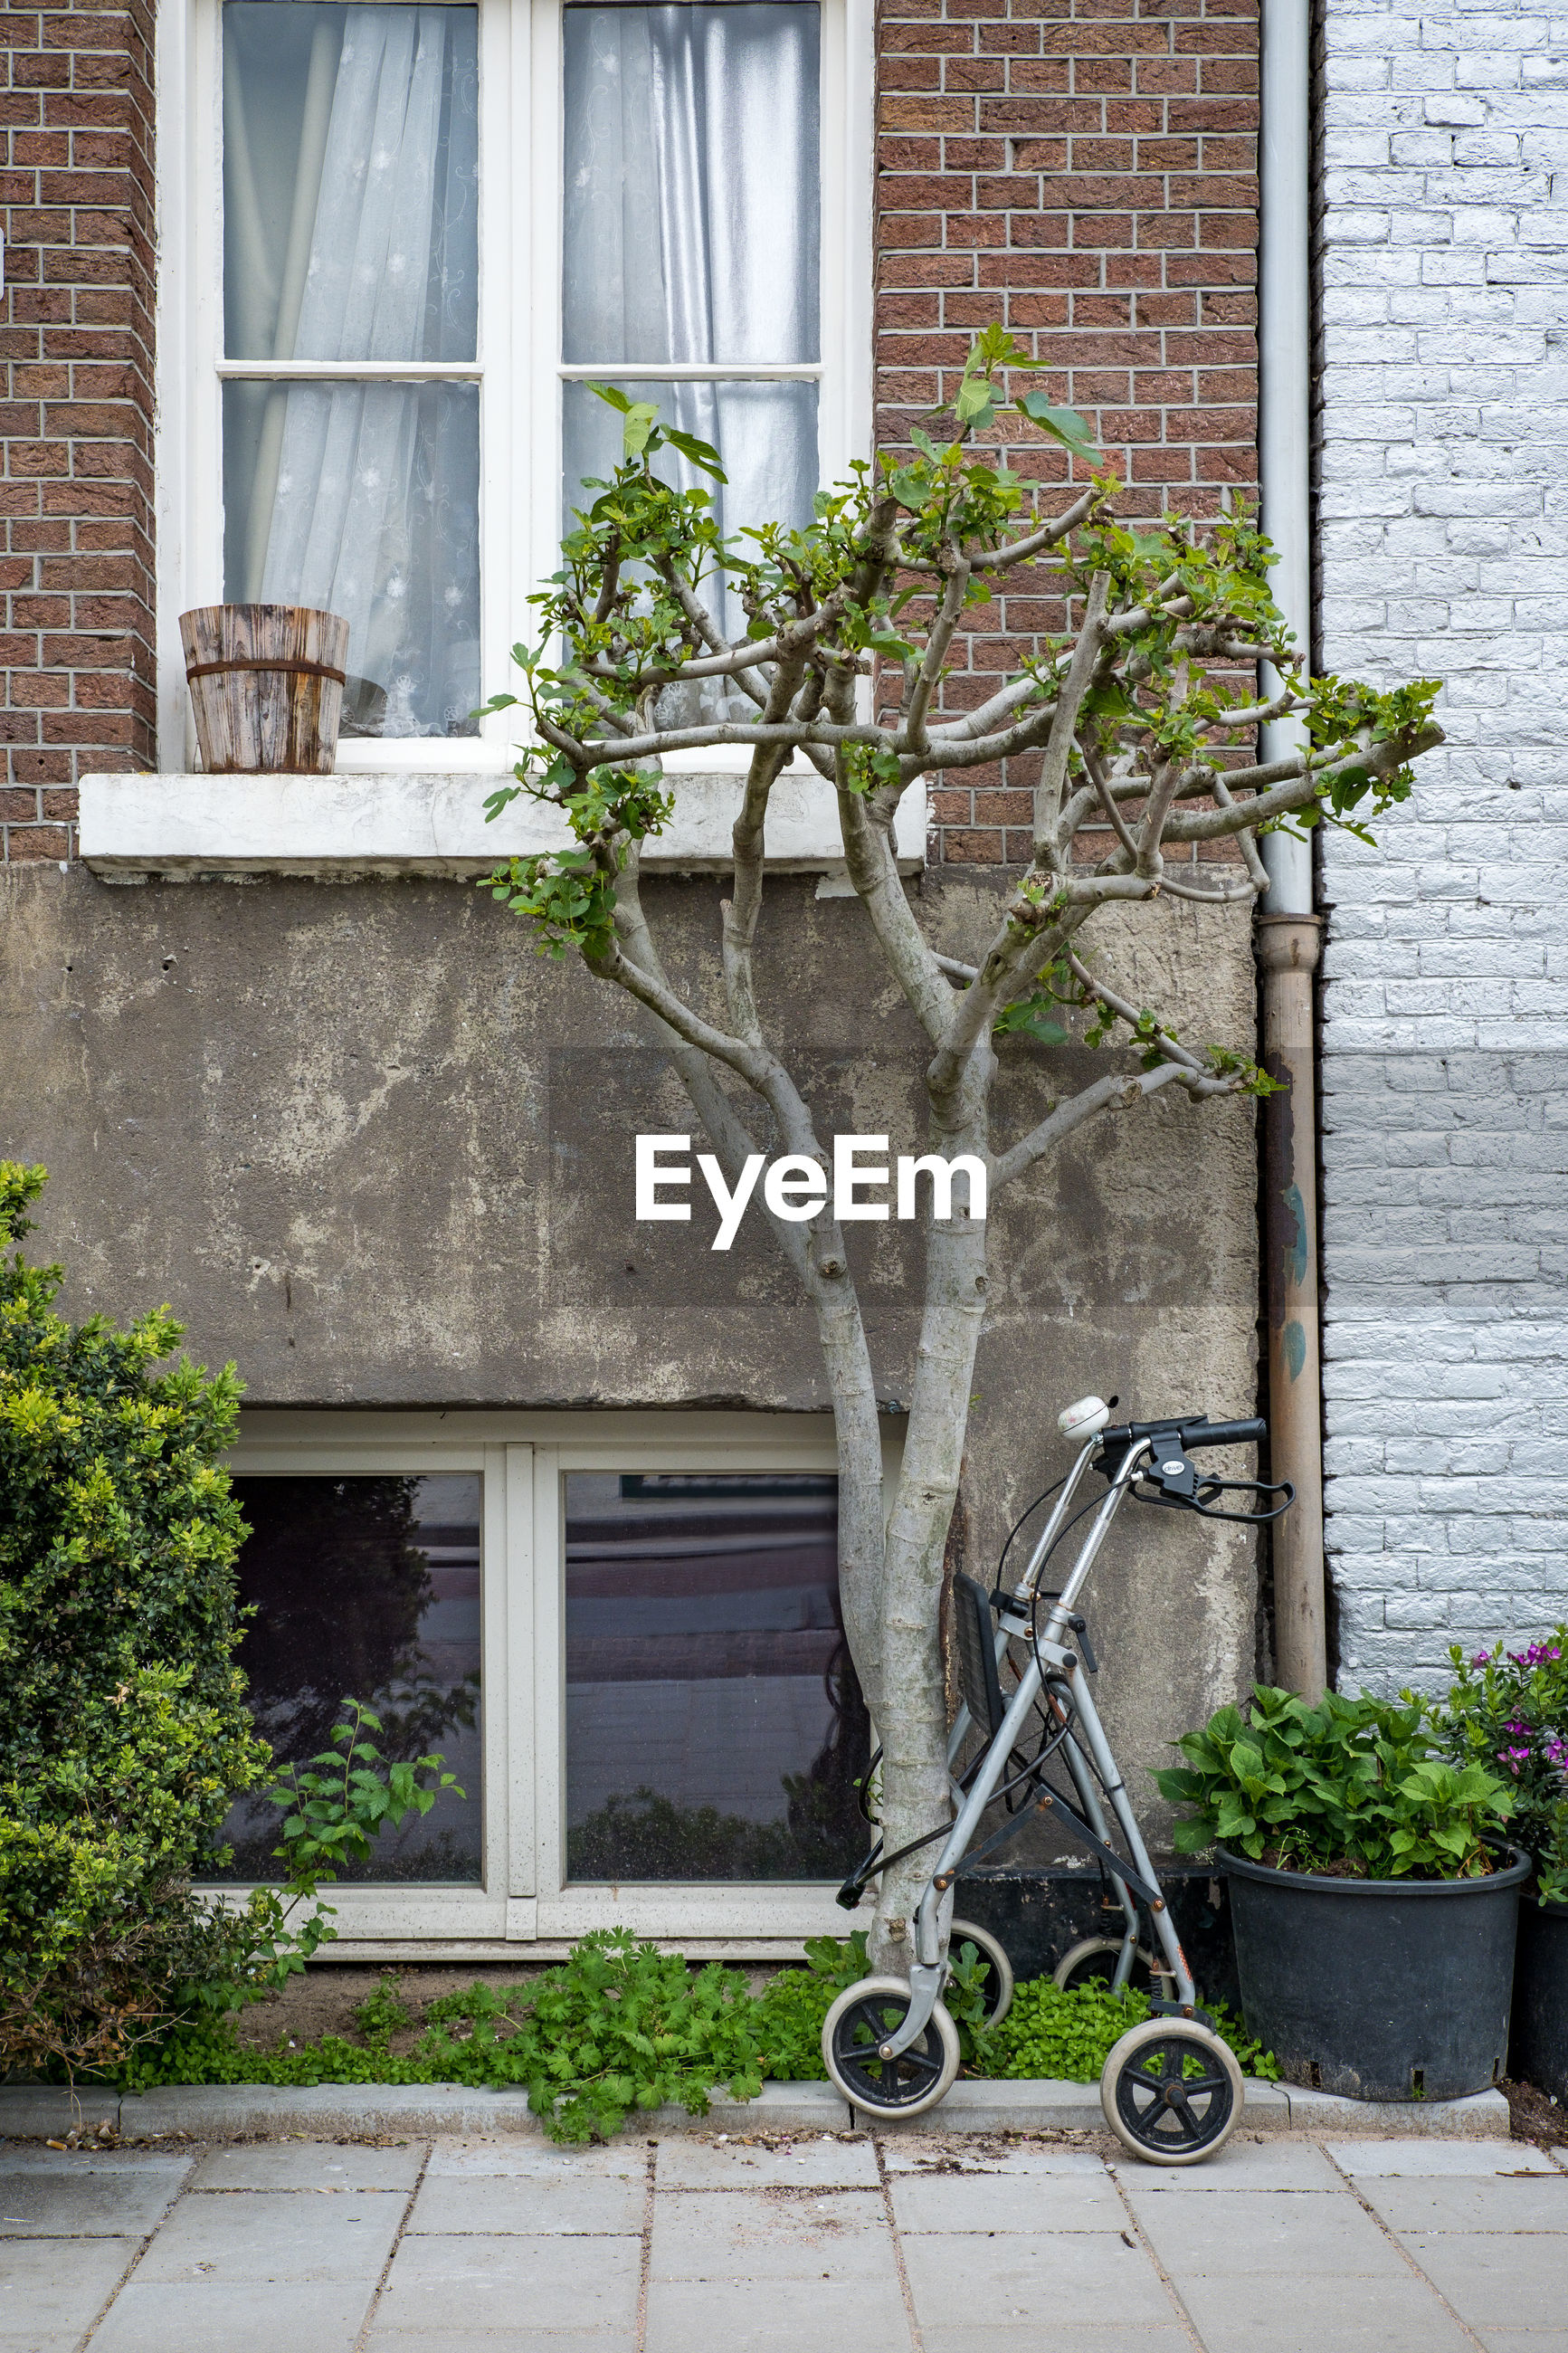 building exterior, architecture, building, built structure, plant, window, house, residential district, growth, no people, day, potted plant, nature, city, brick, outdoors, entrance, facade, tree, door, gardening, houseplant, flower pot